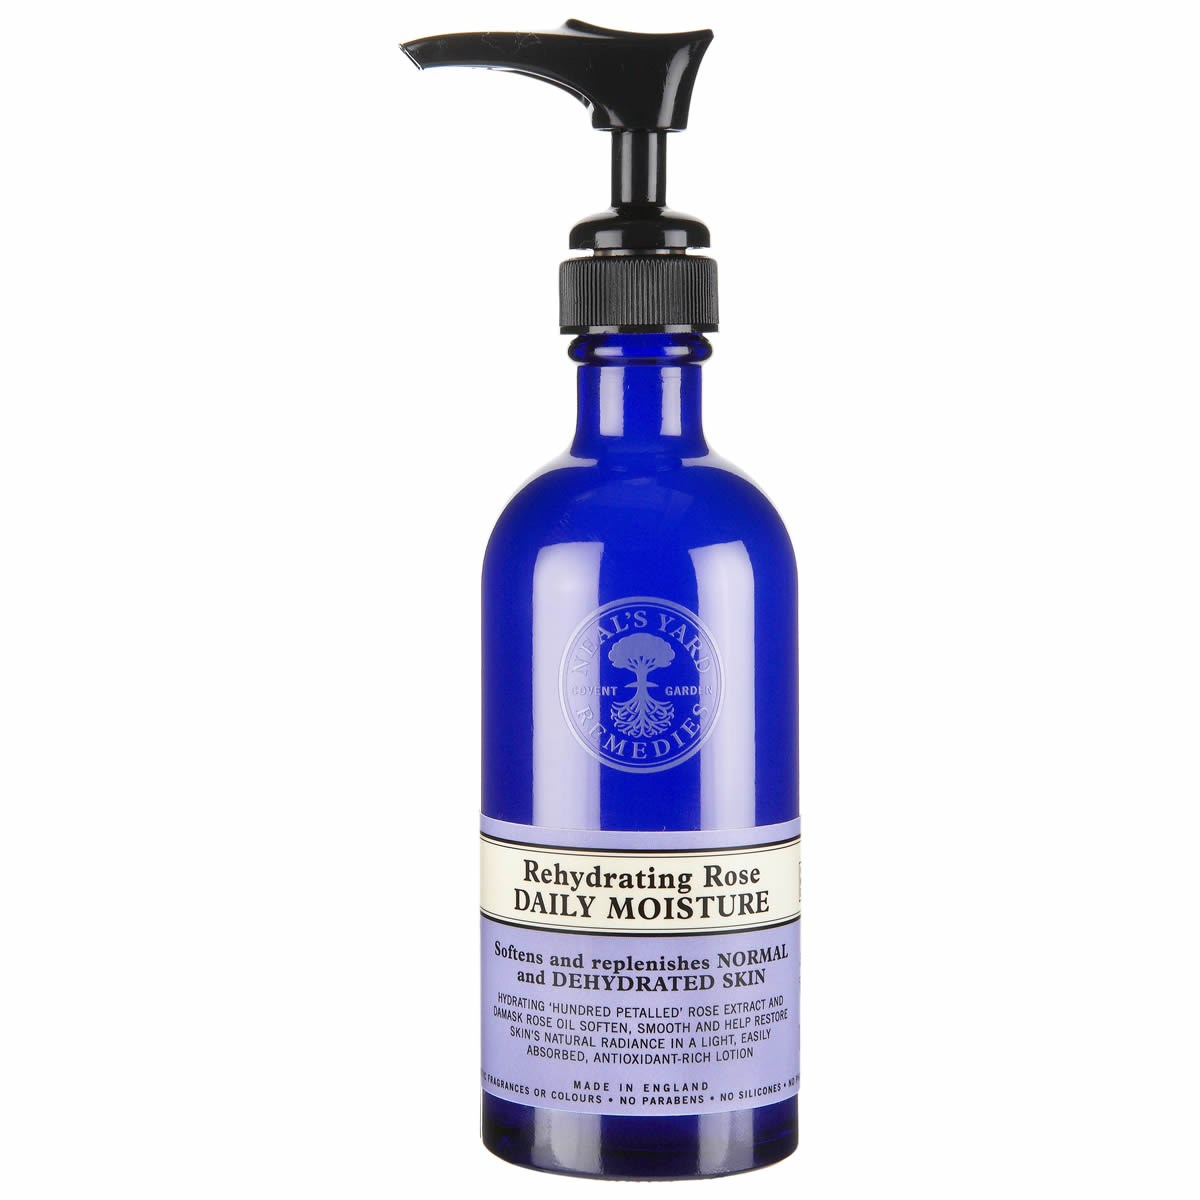 Neal's Yard Rehydrating Rose Daily Moisture